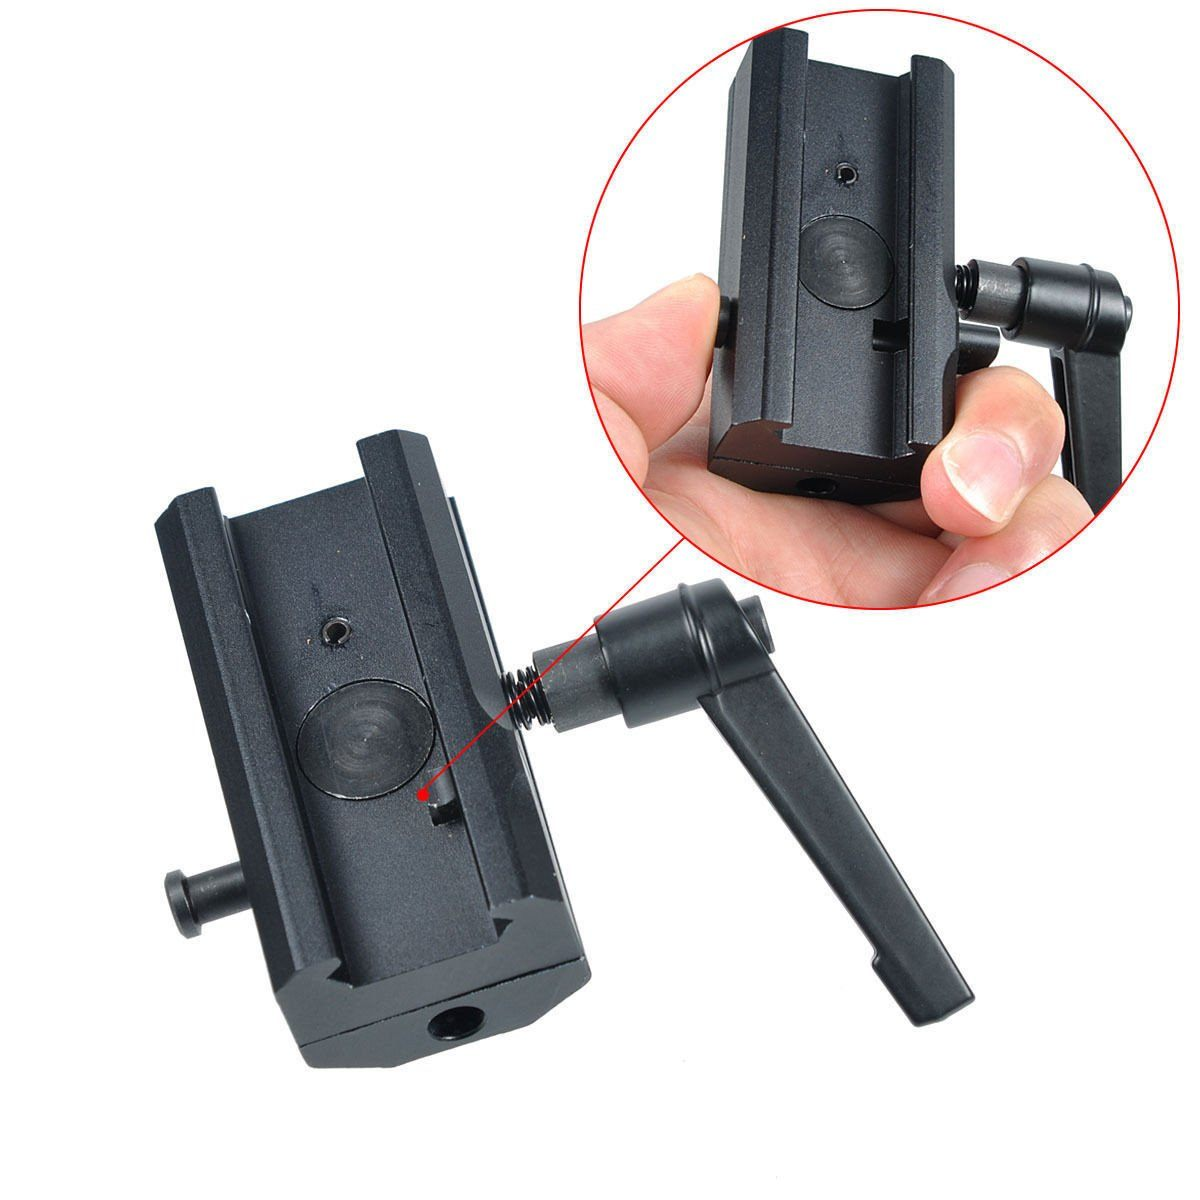 Rotating Quick Detachable Bipod Adapter for Picatinny Rails Bipods & Monopods Unbranded